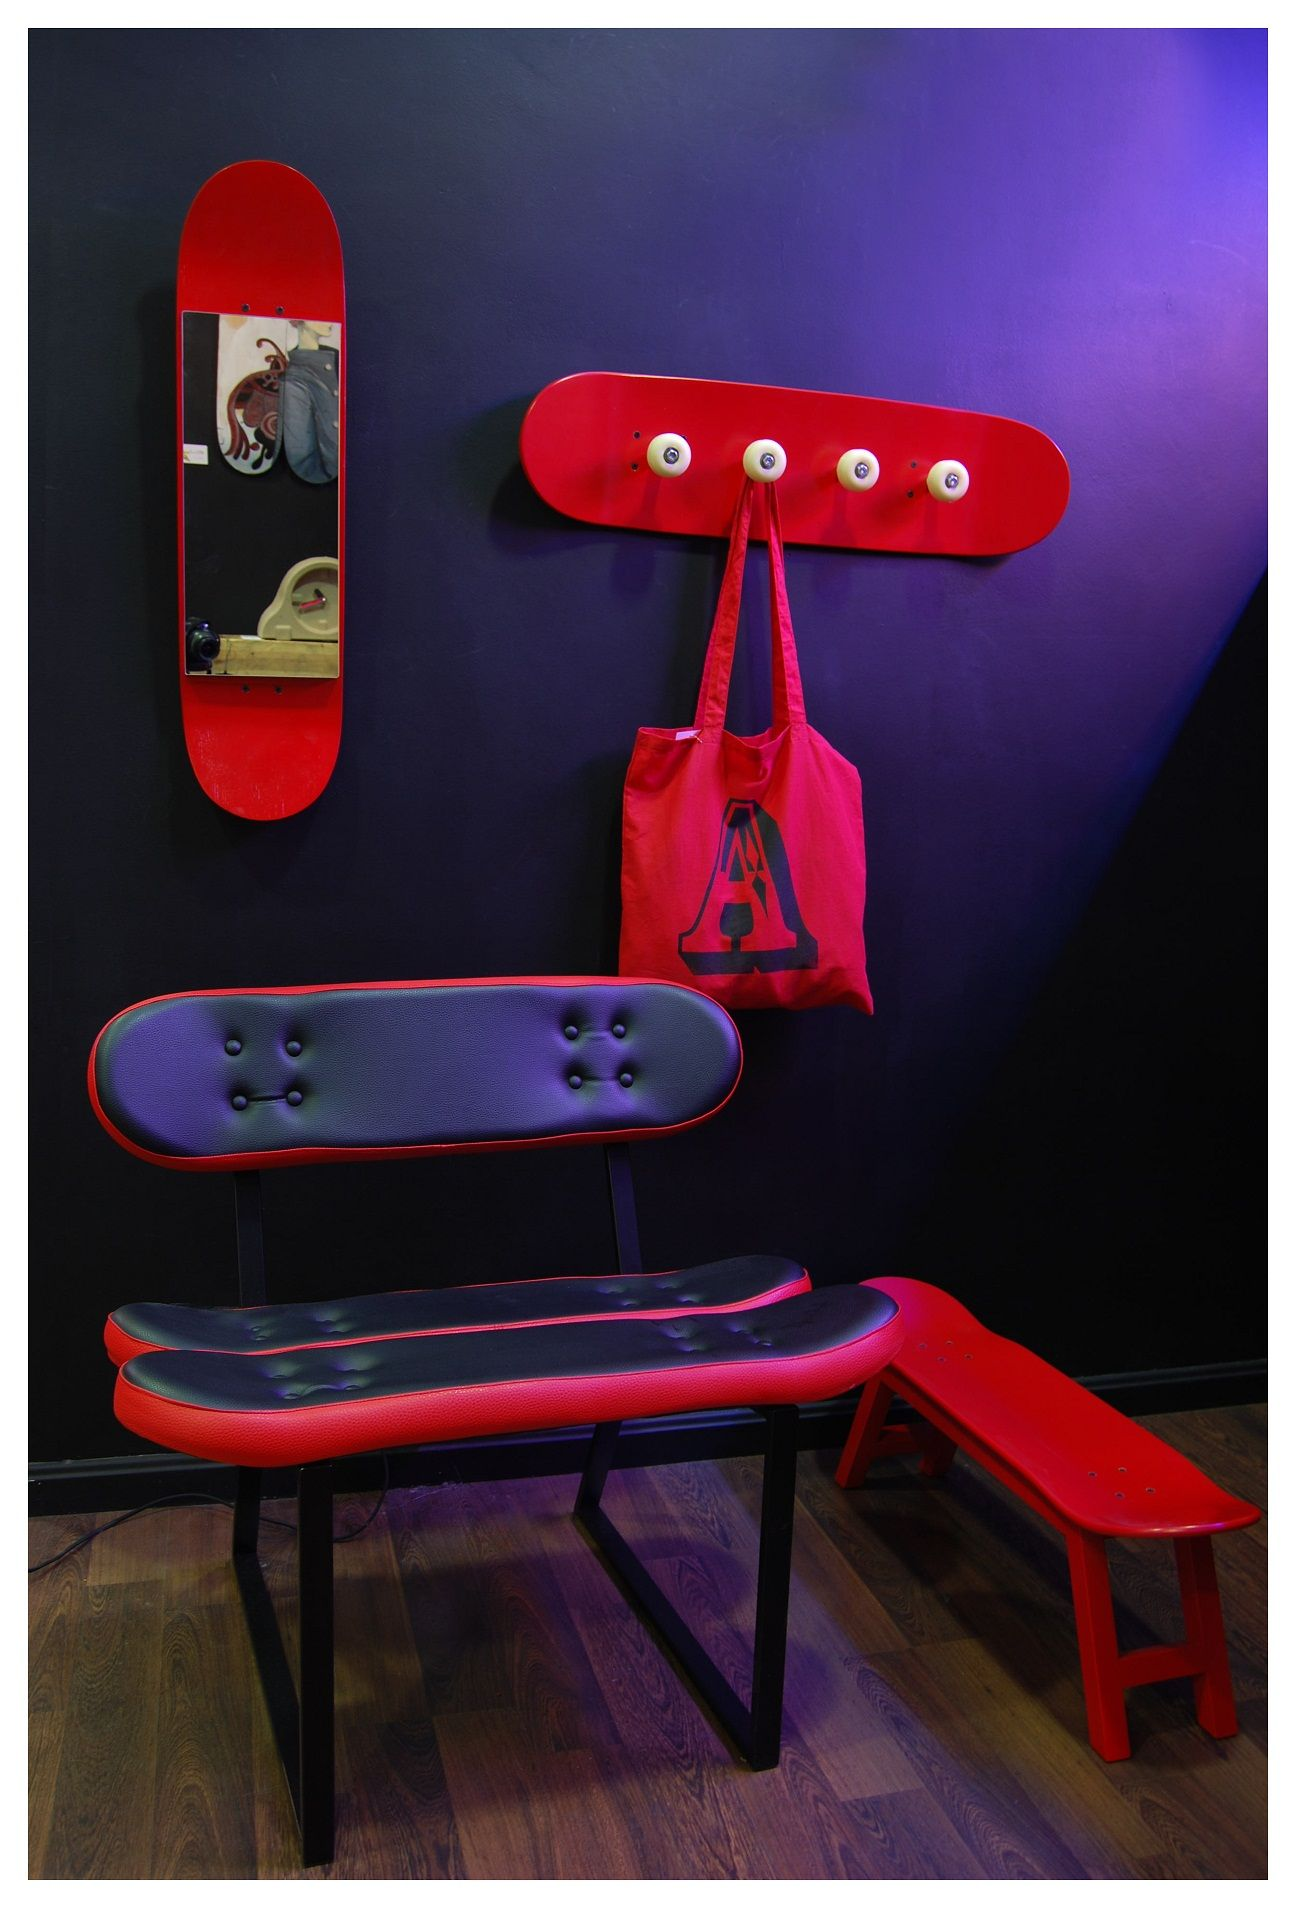 The following post will give you inspiration how to create a sporty decoration in the house. The easy way is add a furniture with sporty design, like in the following. These furniture was created by Skate-Home. Skate-Home makes furniture and home accessories from repurposed skateboard decks. One of the home accessories is skateboard deck clock. The company offers a wide variety of home accessories that you would probably never imagine could be built from skateboards.